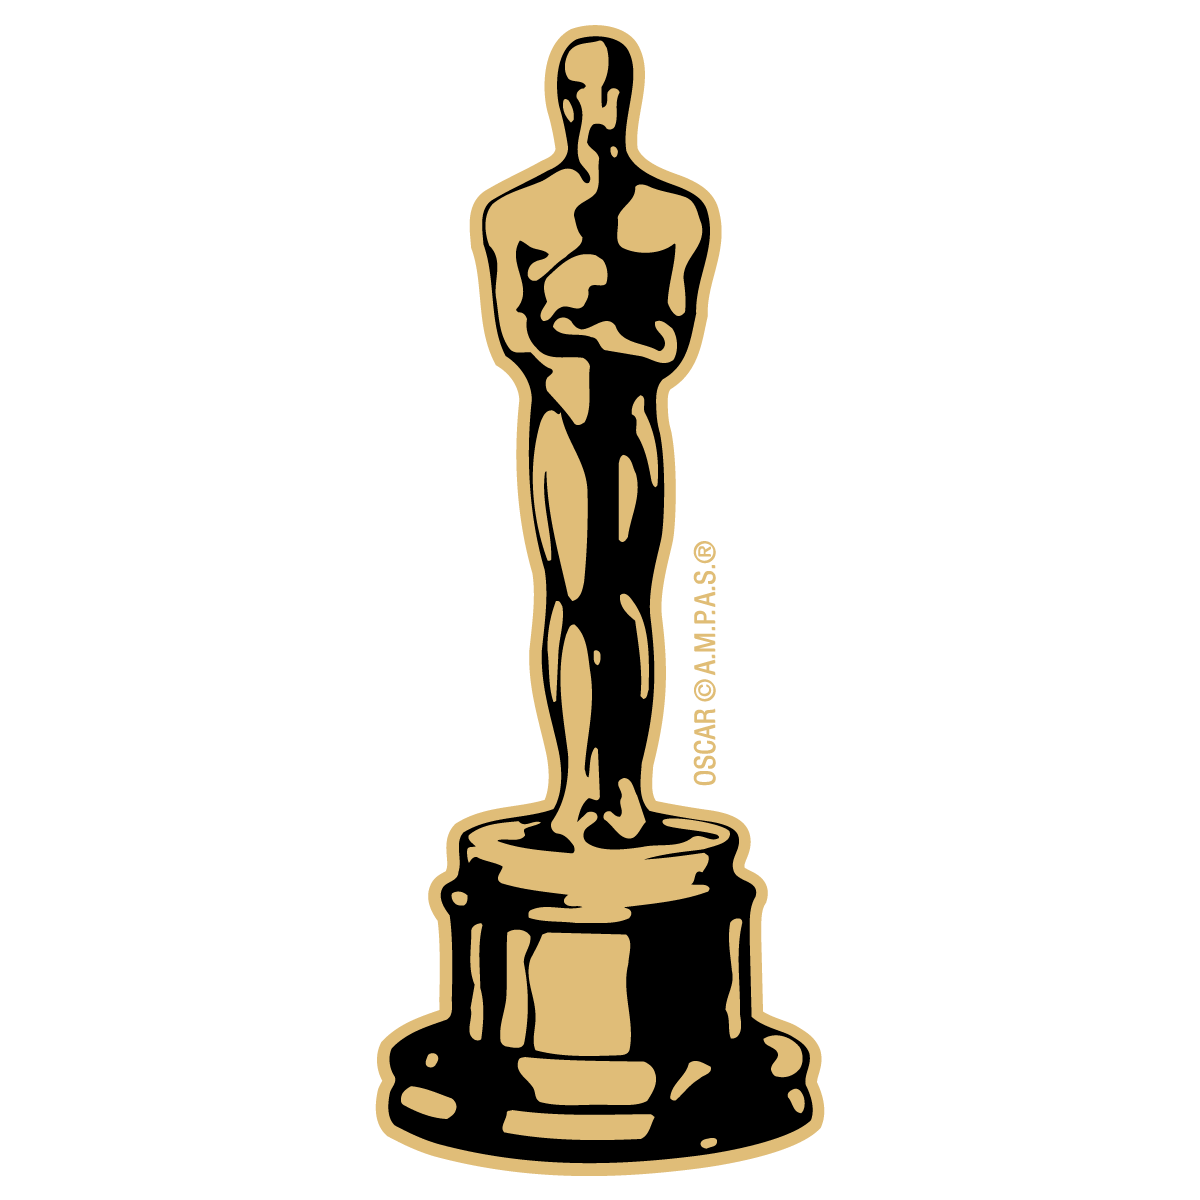 Oscar trophy png. Statuette drawing at getdrawings